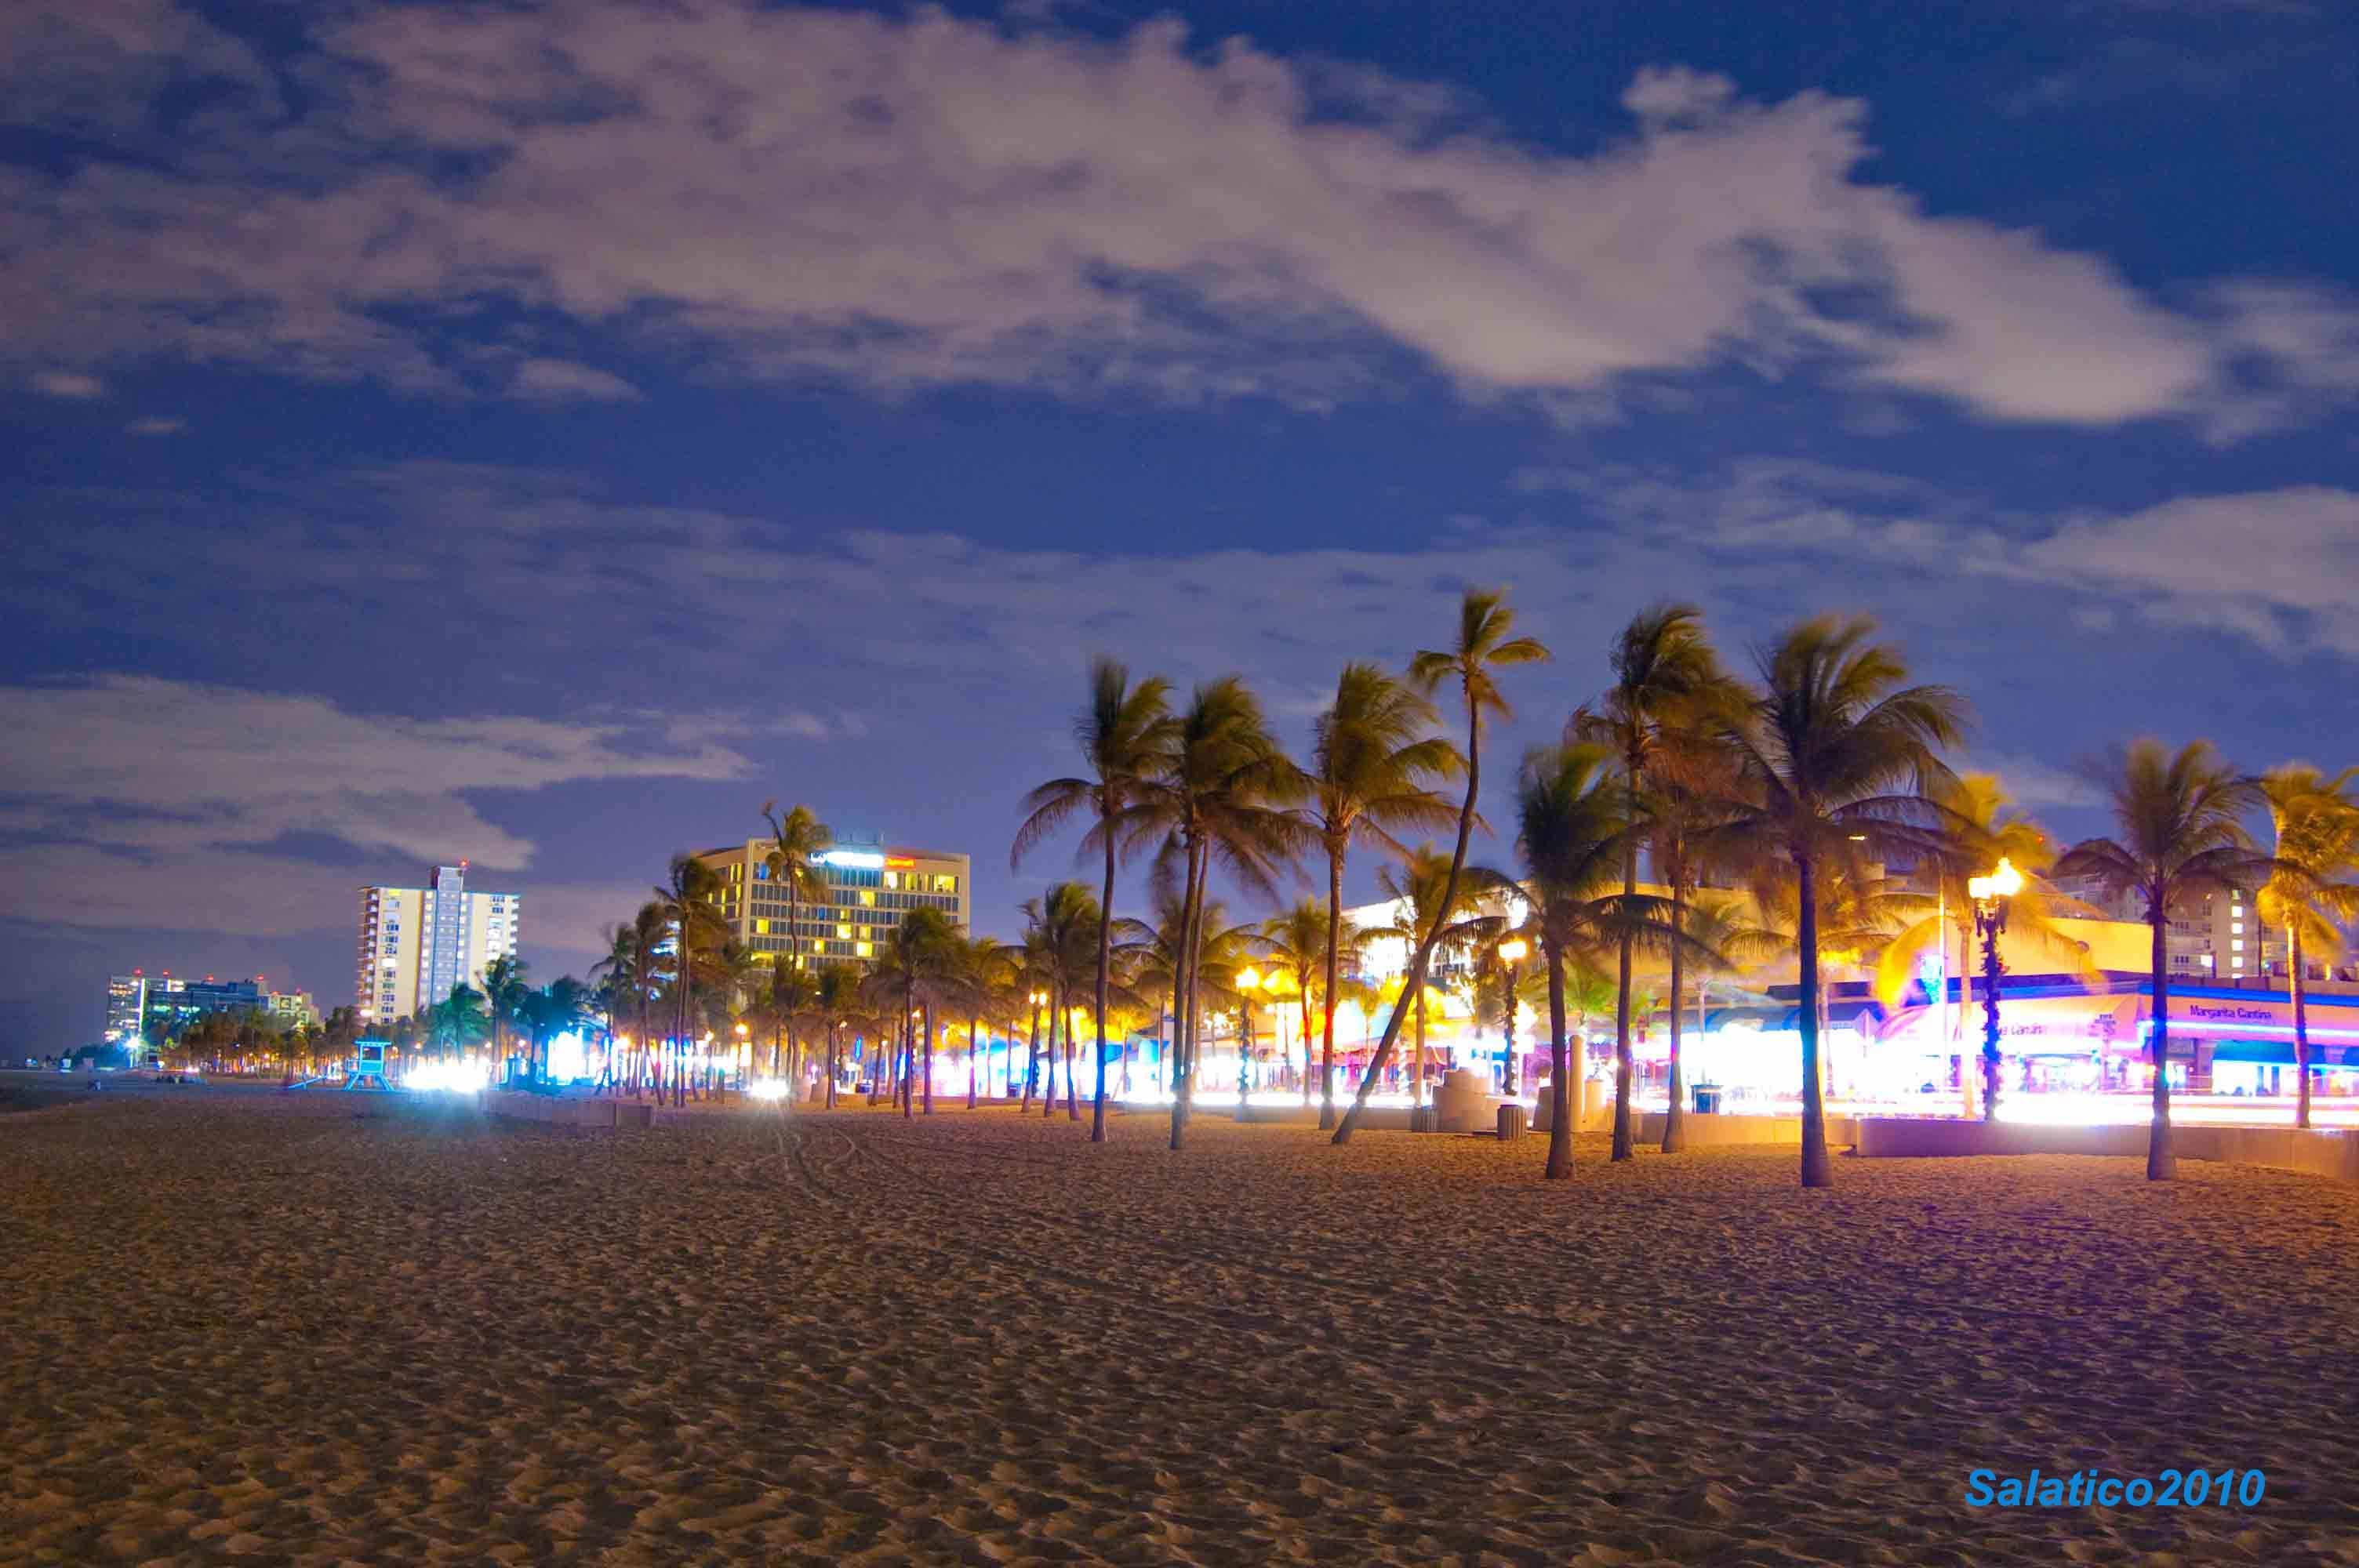 Ft. Lauderdale Beach: